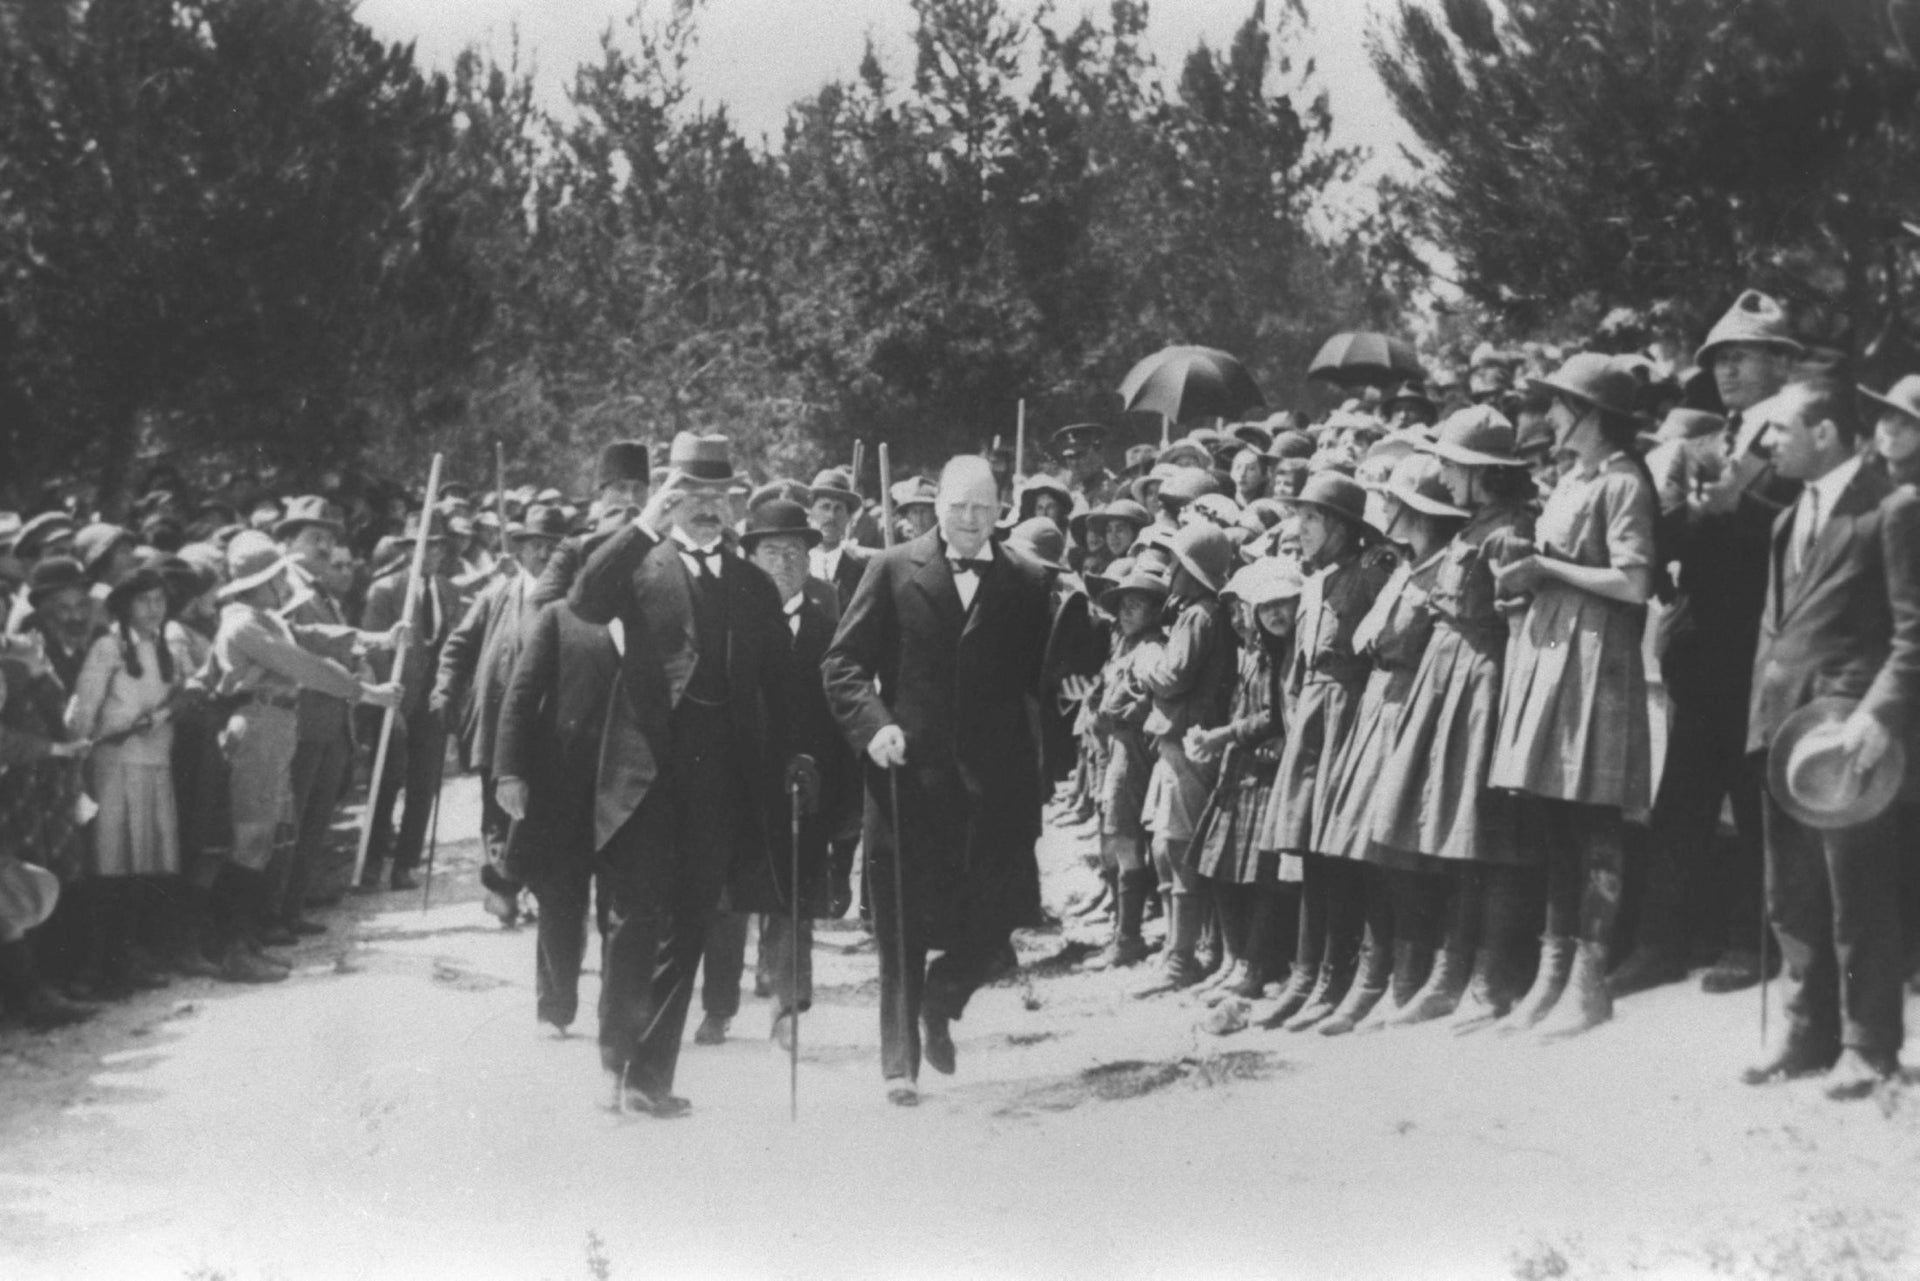 Britain's then-Home Secretary Winston Churchill, right, escorted by High Commissioner Herbert Samuel in Jerusalem during the British Mandate era, March 1921.